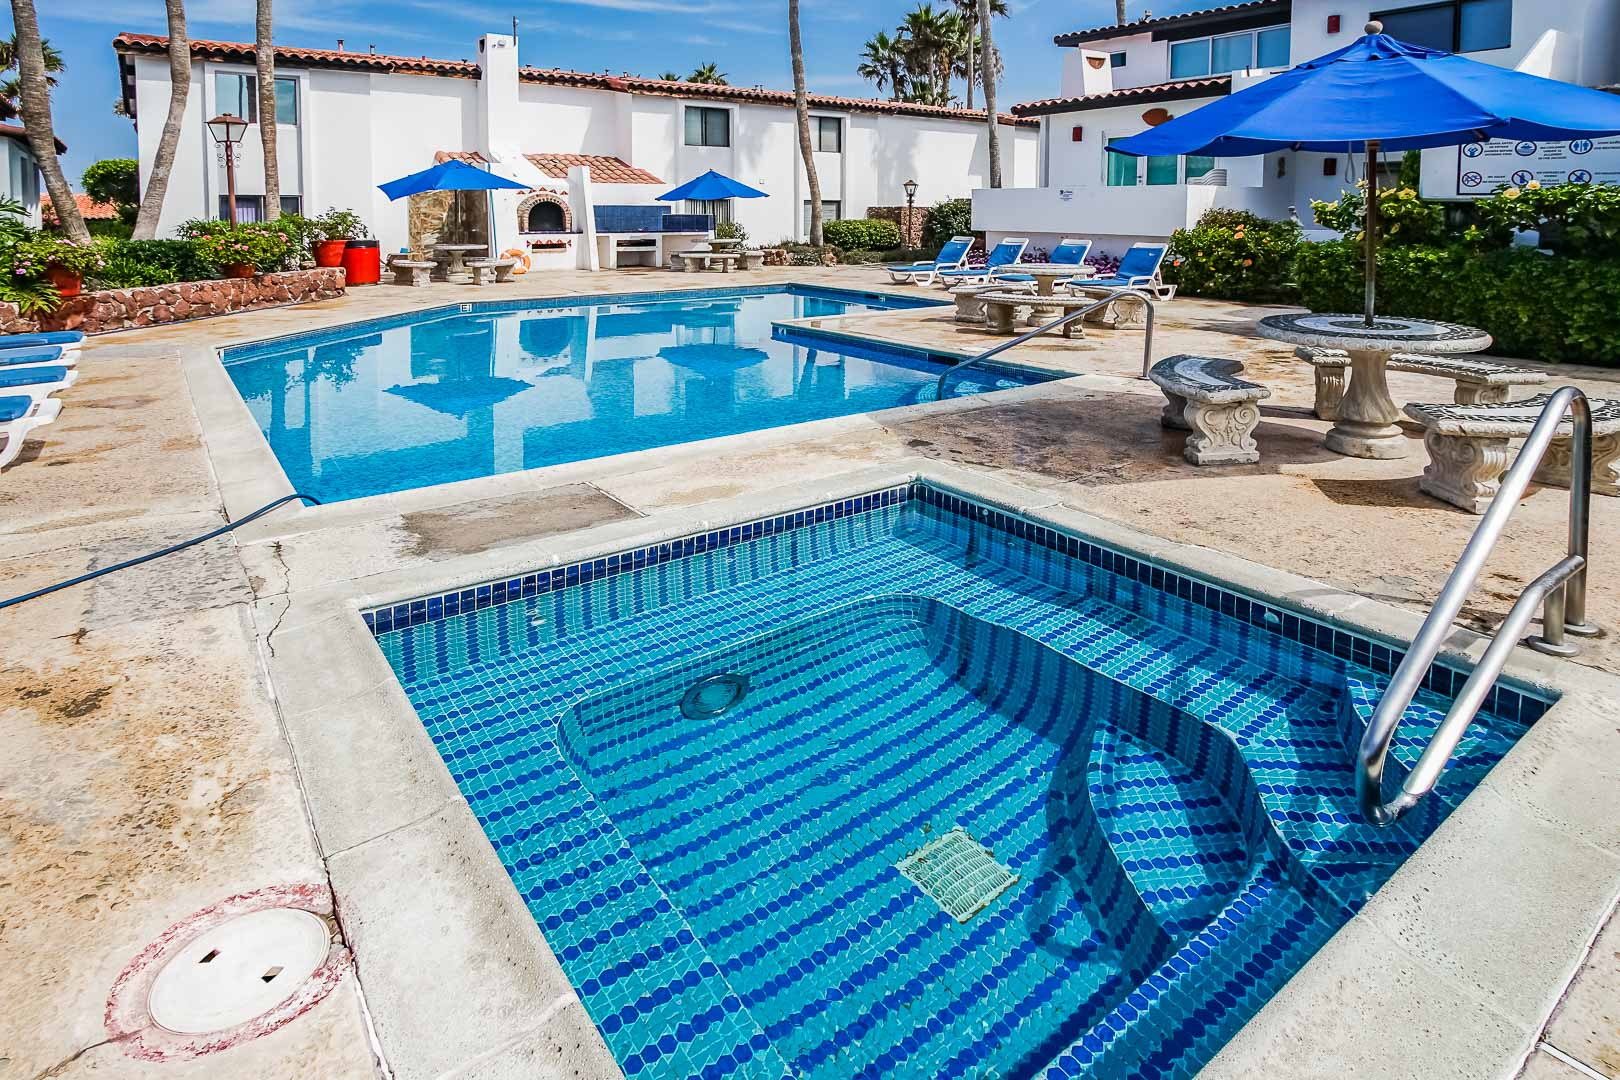 A crisp outdoor swimming pool and Jacuzzi tub at VRI's La Paloma in Rosarito, Mexico.